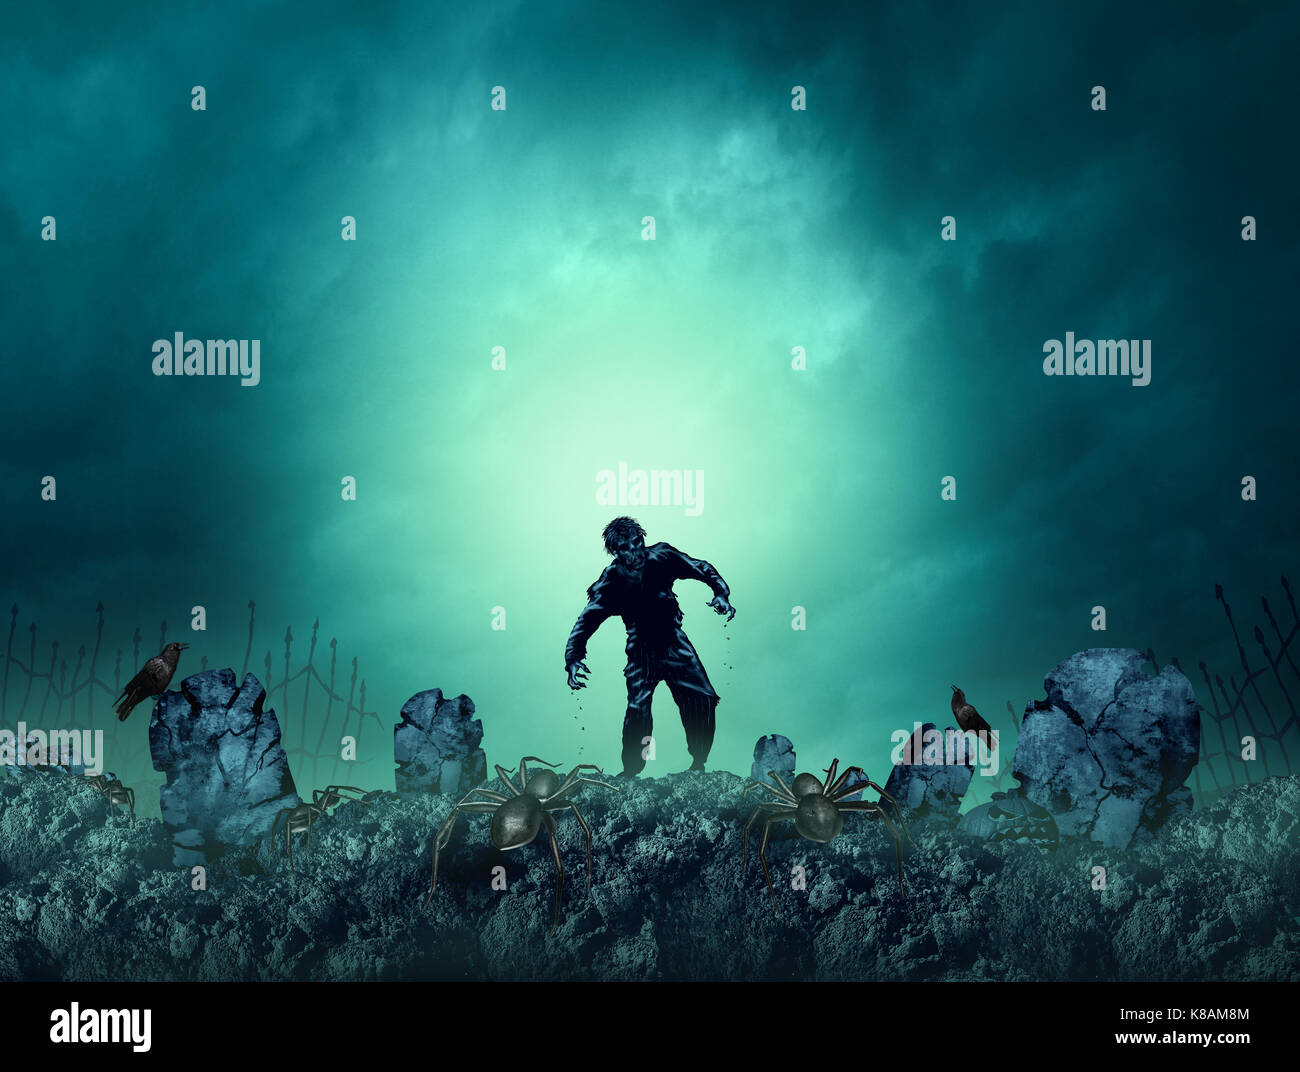 Zombie grave halloween background as a creepy walking monster in a blank area for text as a spooky dead scary ghost - Stock Image